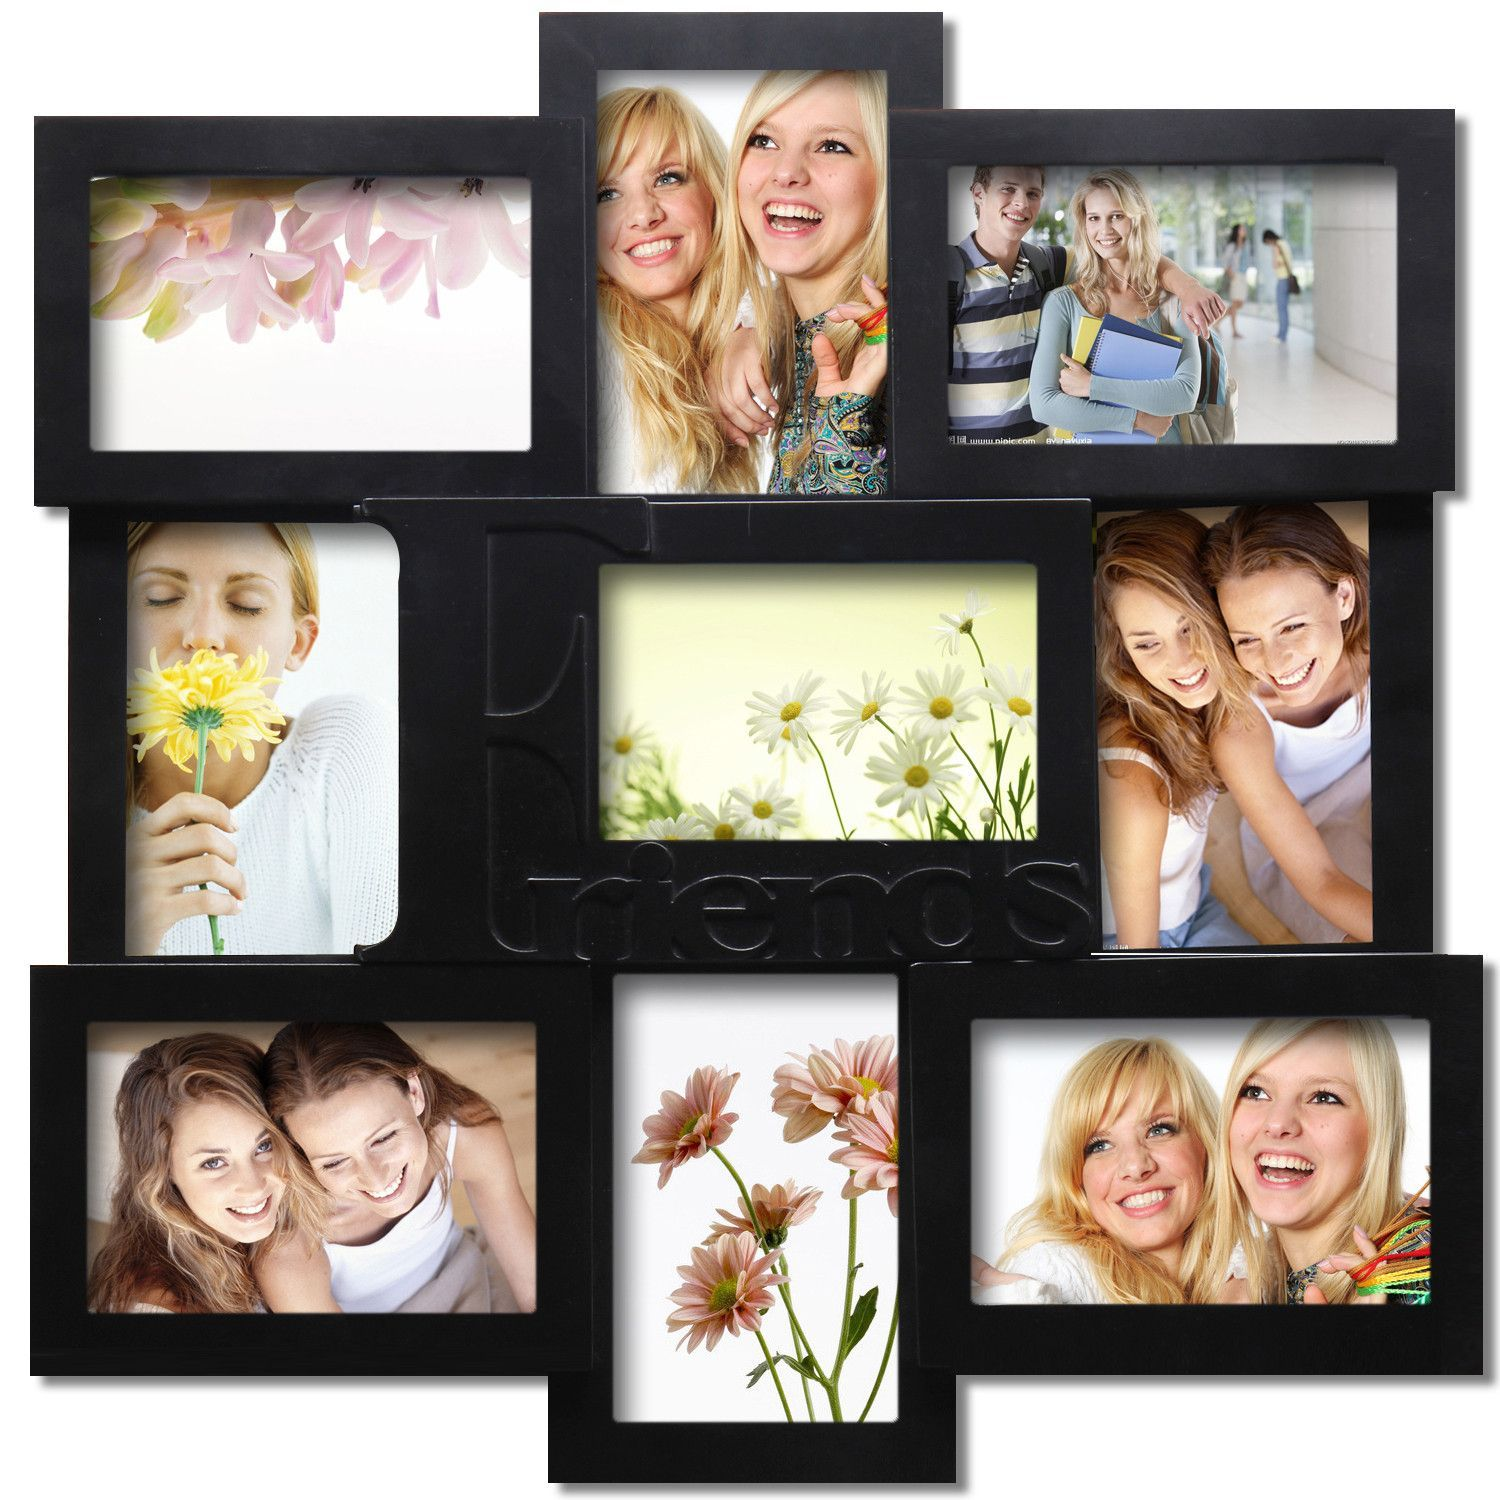 furnistar decorative black wood friends wall hanging collage picture photo frame pf0310